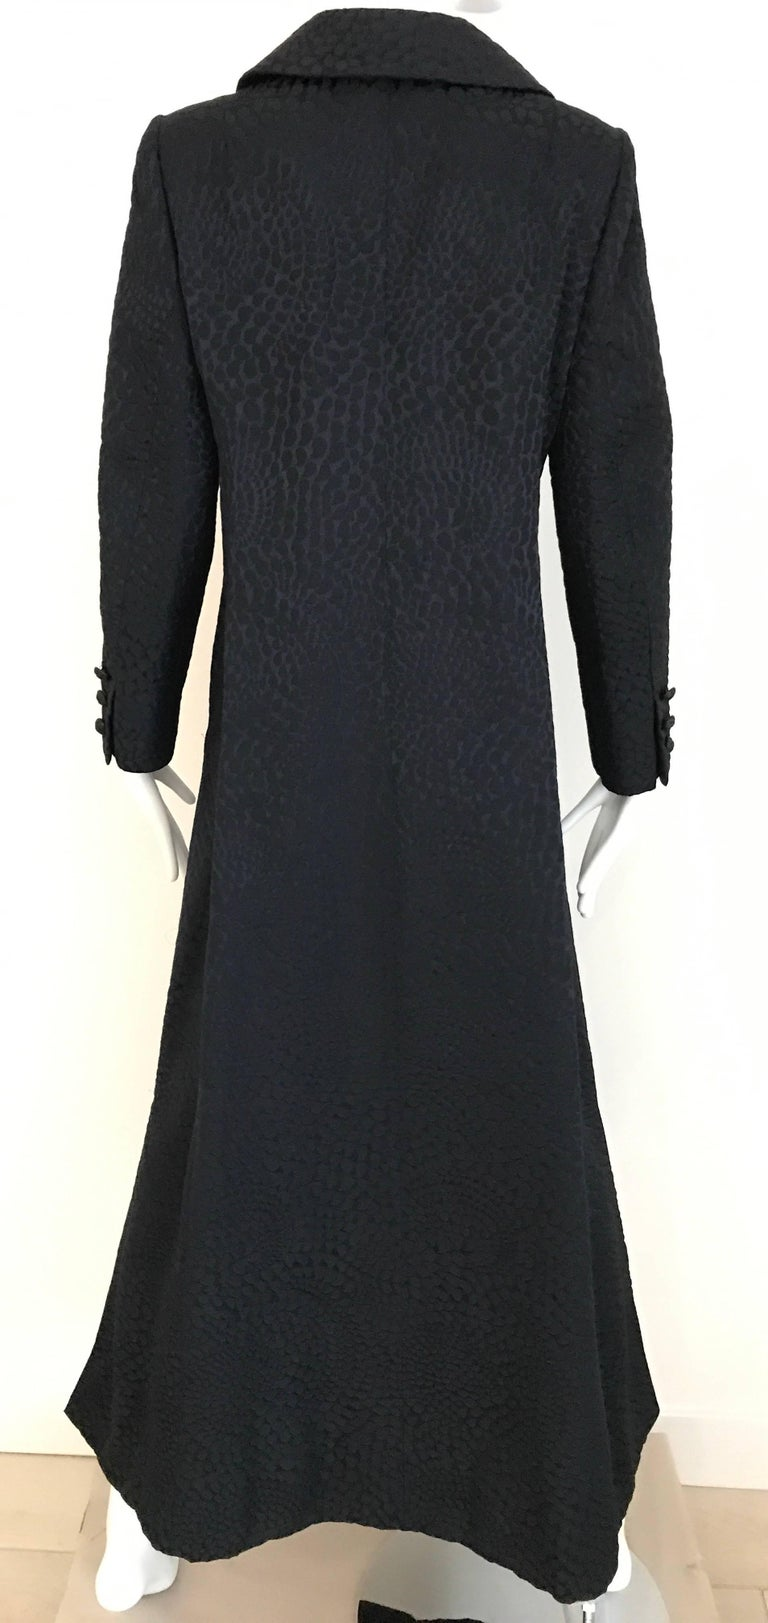 1960s  Black Cotton Jacquard evening  long coat/ Jacket with 2 front pockets.. This coat is in excellent condition and is barely worn. coat is  lined beautifully in silk jacquard. Fitted slimming look. Label: Eres Couture  Size Small - Medium ( 4 /